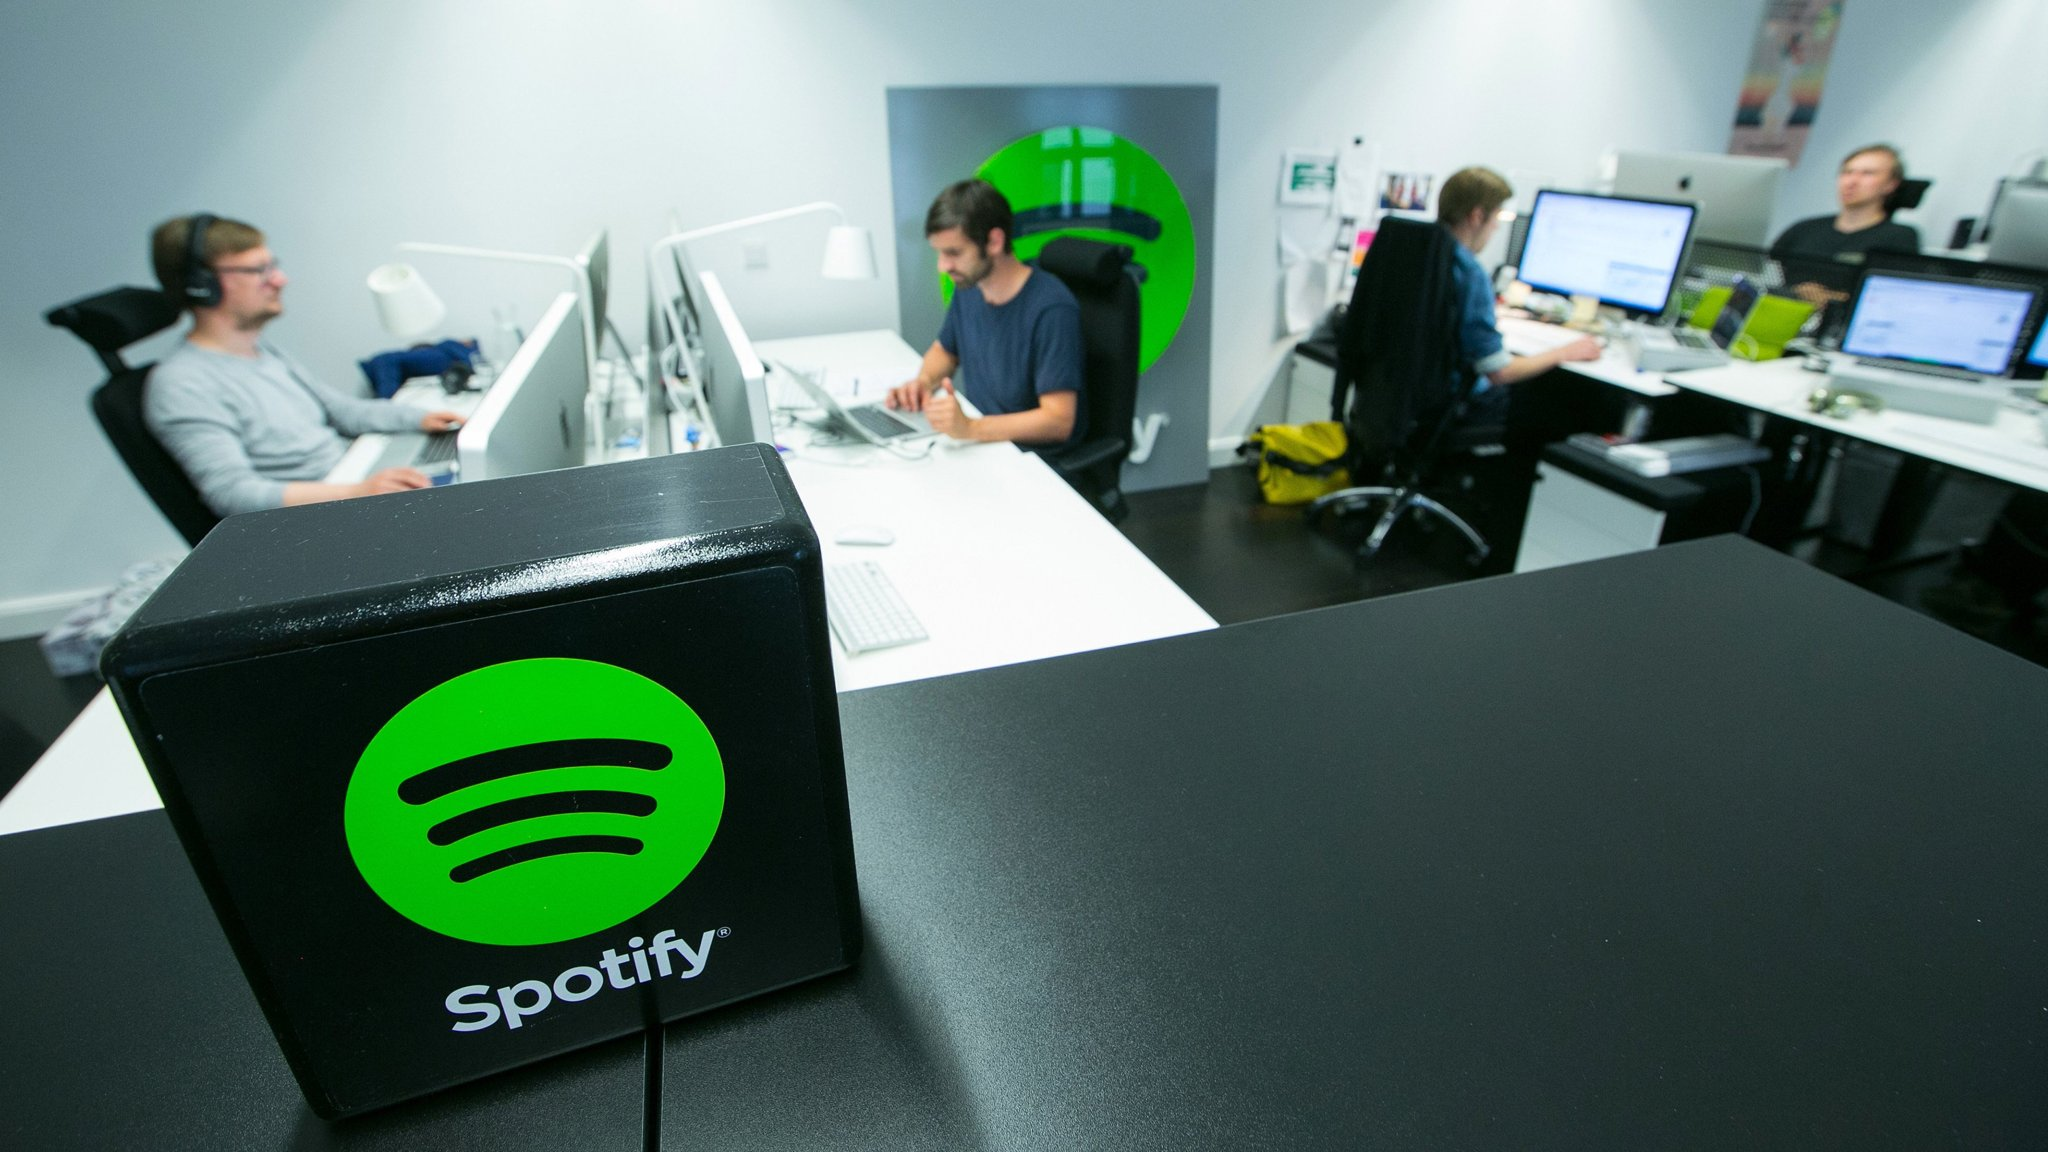 Spotify allows Free Tier streaming on Connect-enabled speakers